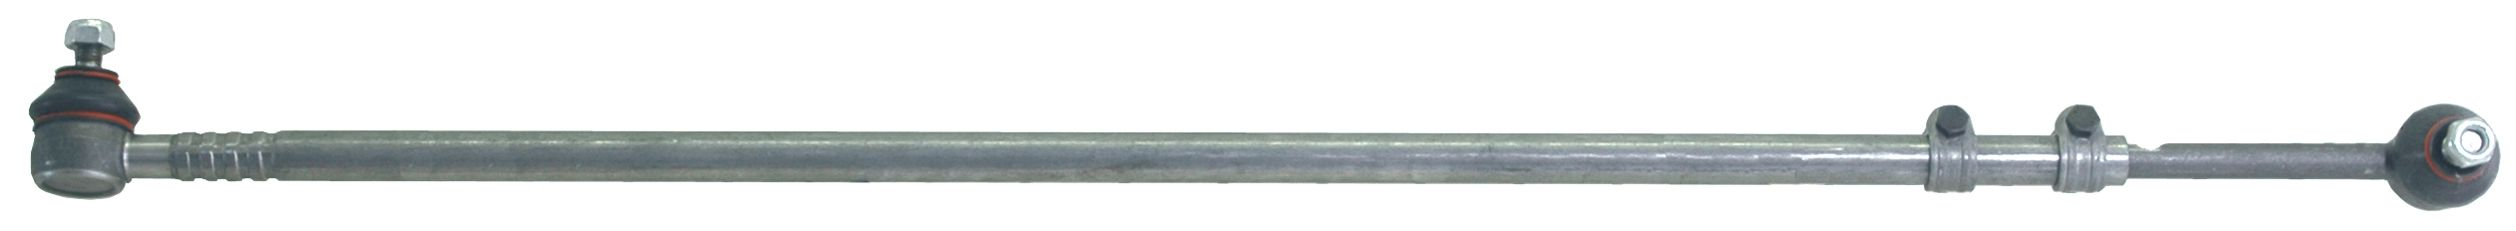 DEUTZ-FAHR DRAG LINK ASSEMBLY 30283